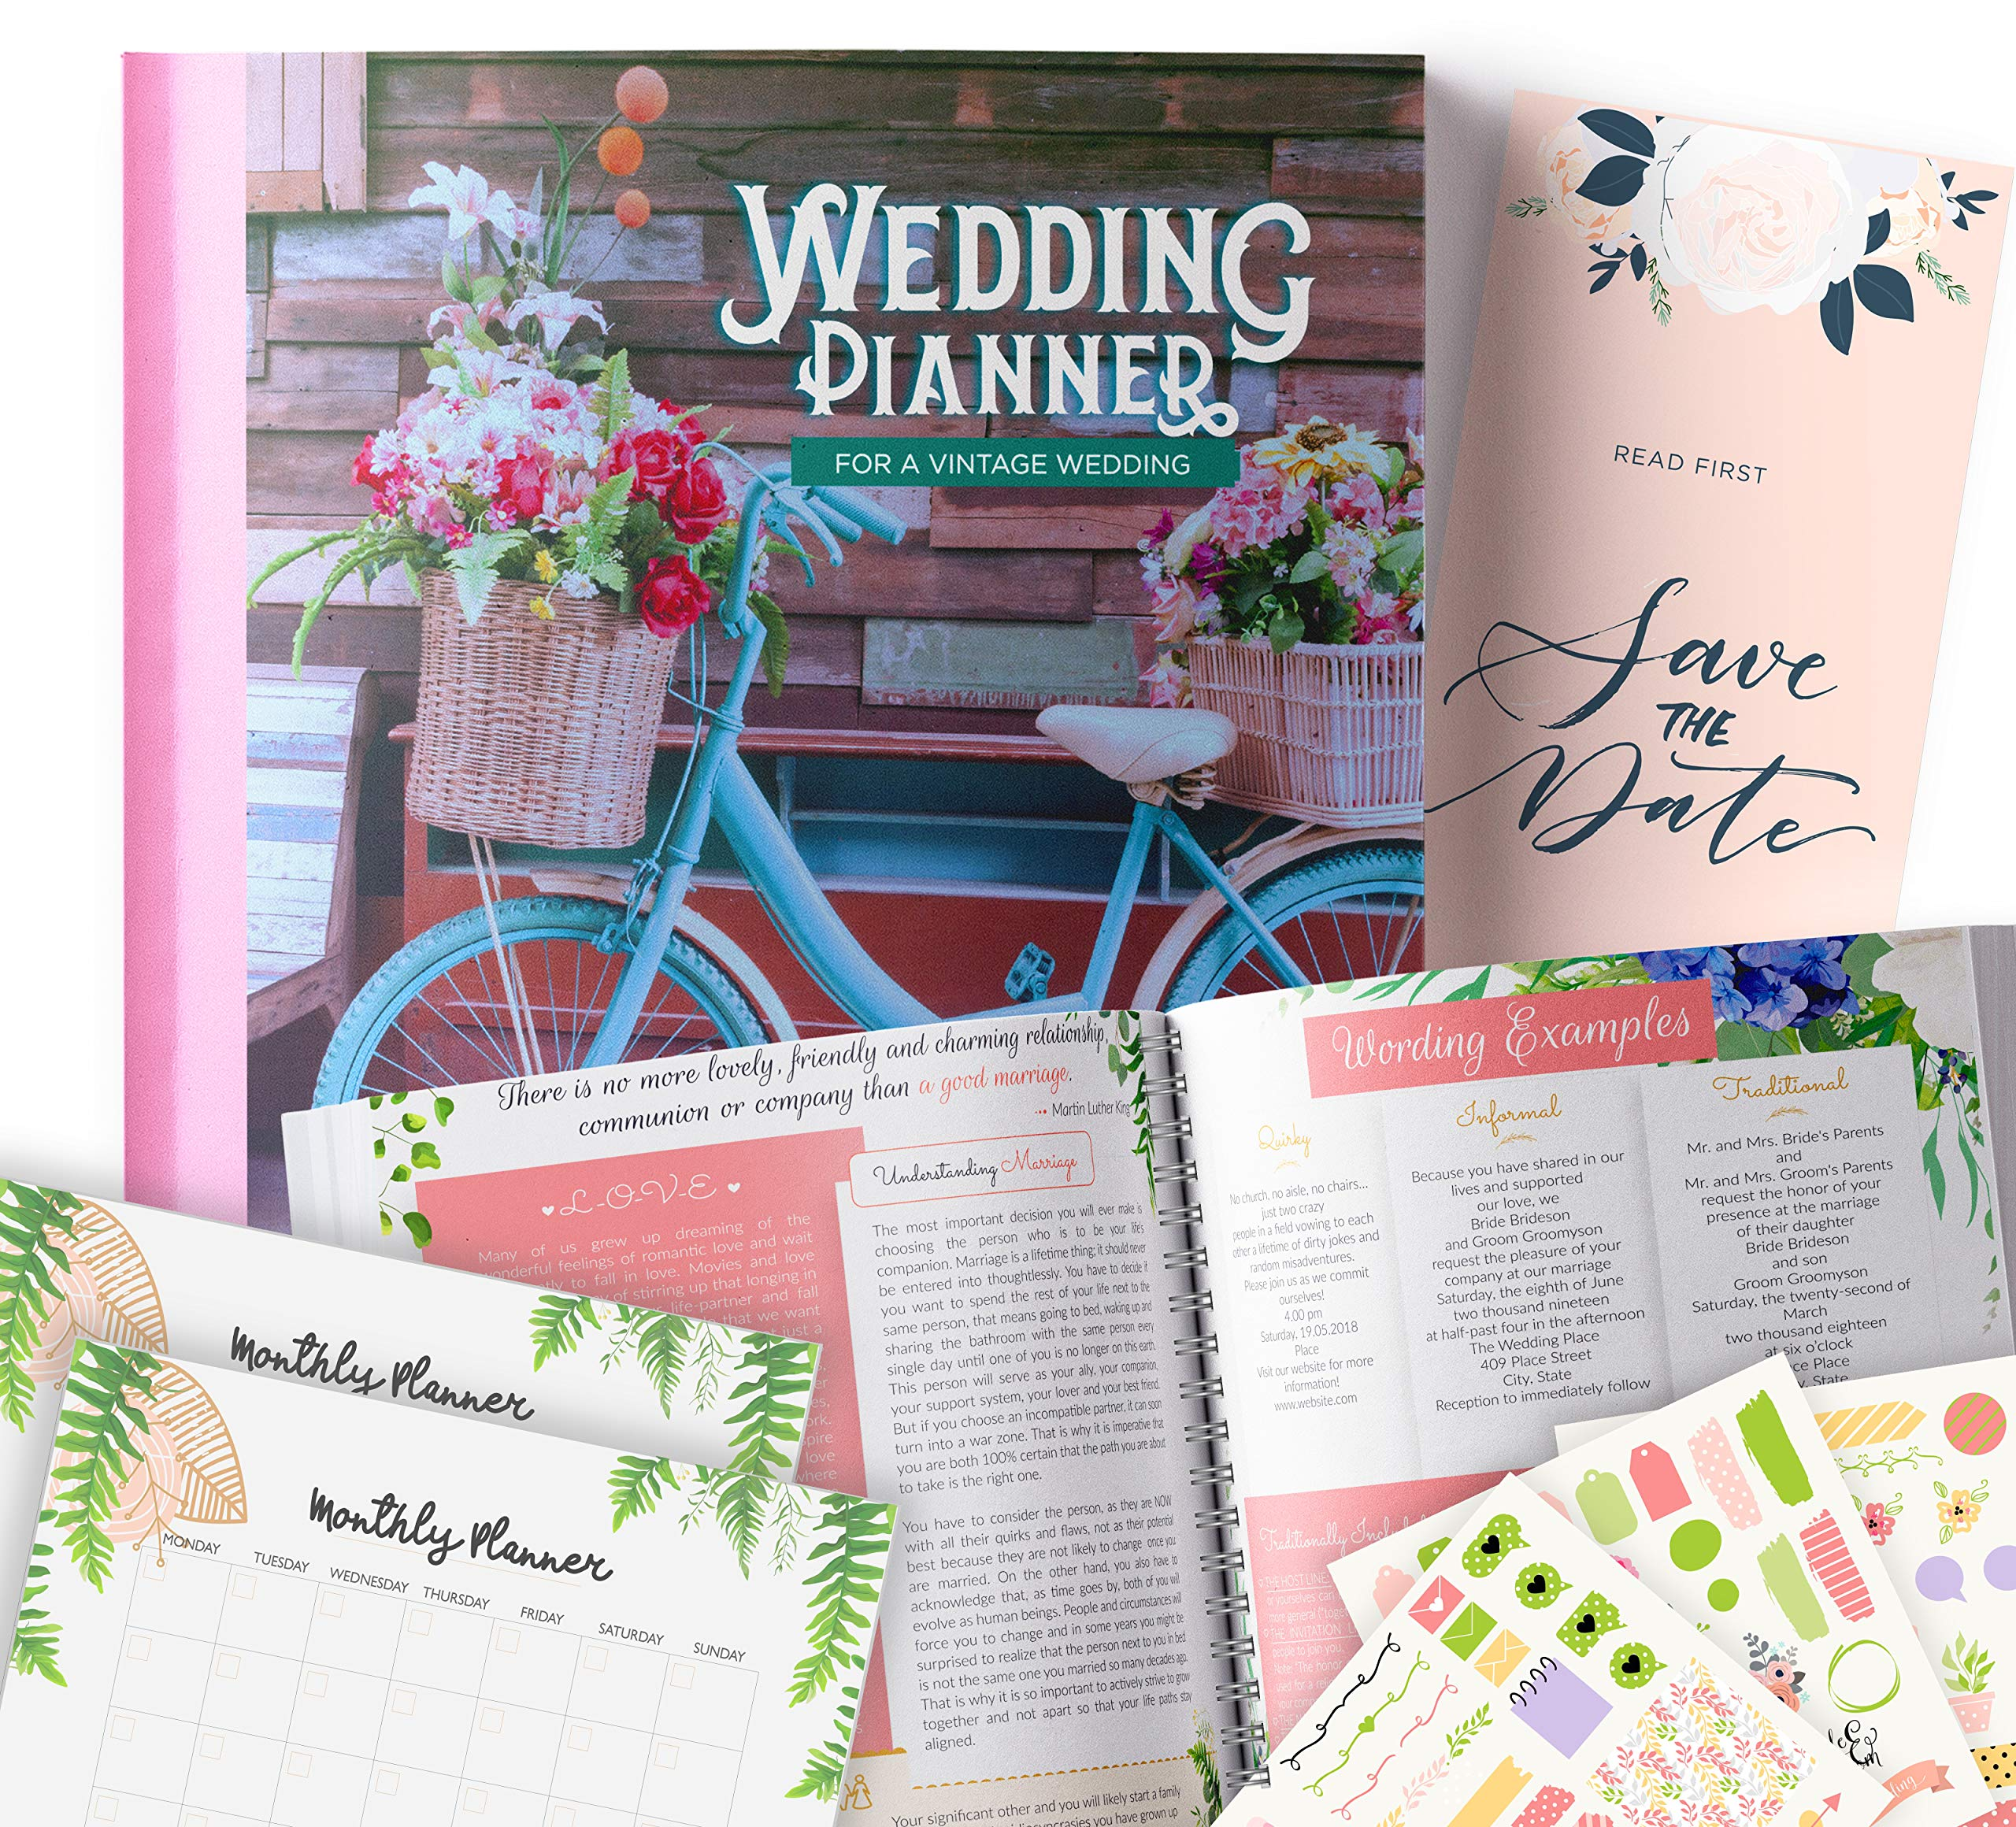 Vintage Wedding Planner | Step-By-Step Binder to Organize Your Dream Day Using Stickers, Photos & Pictures | Journal For Organizing a Wedding by Yourself | Gift for Brides |         by Floating Daydreams